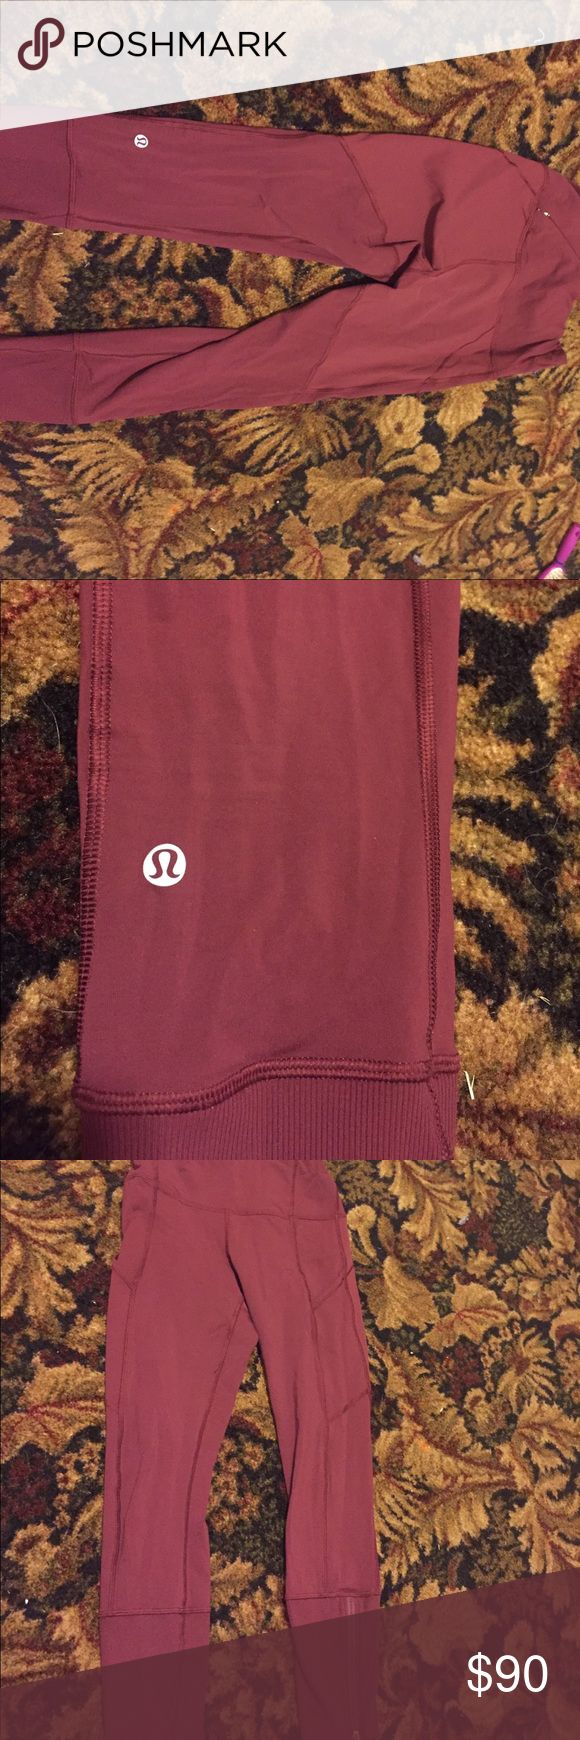 Lululemon maroon leggings size 4 No piling or tear they are in excellent condition lululemon athletica Other